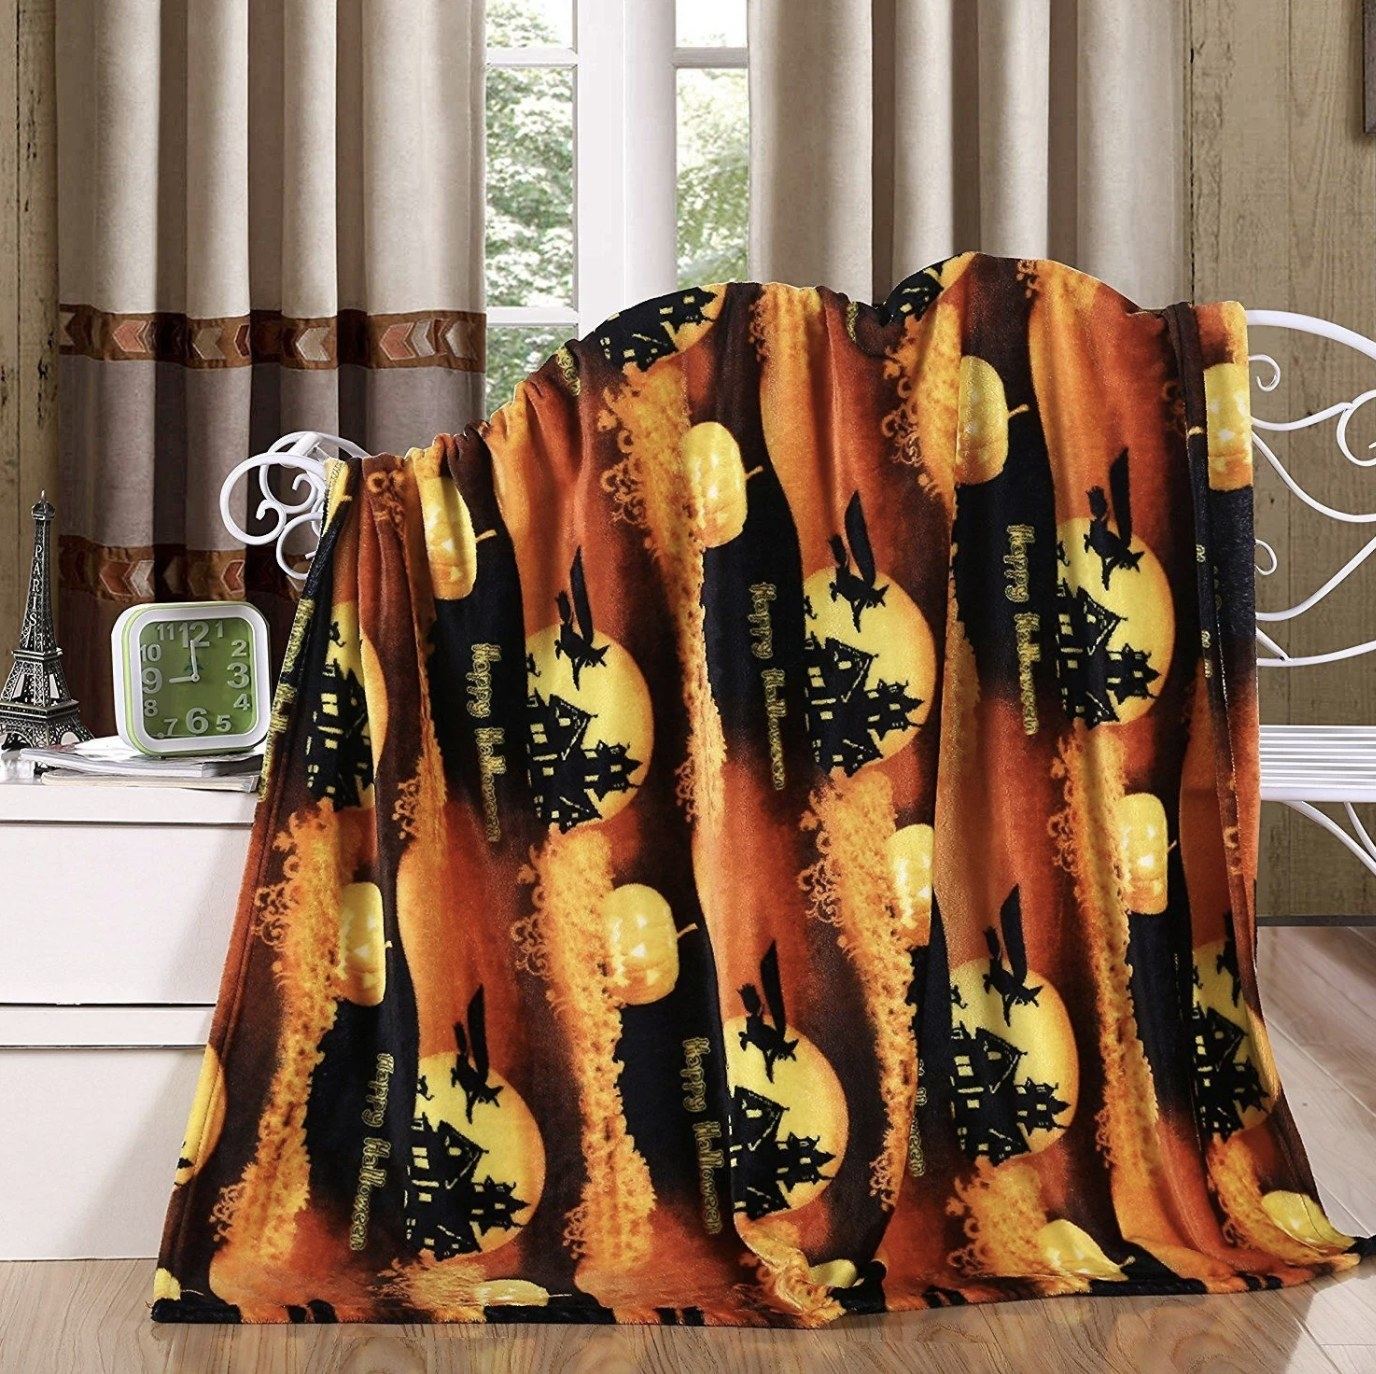 The orange, brown, black and yellow blanket has prints of a moon, haunted house and a flying witch